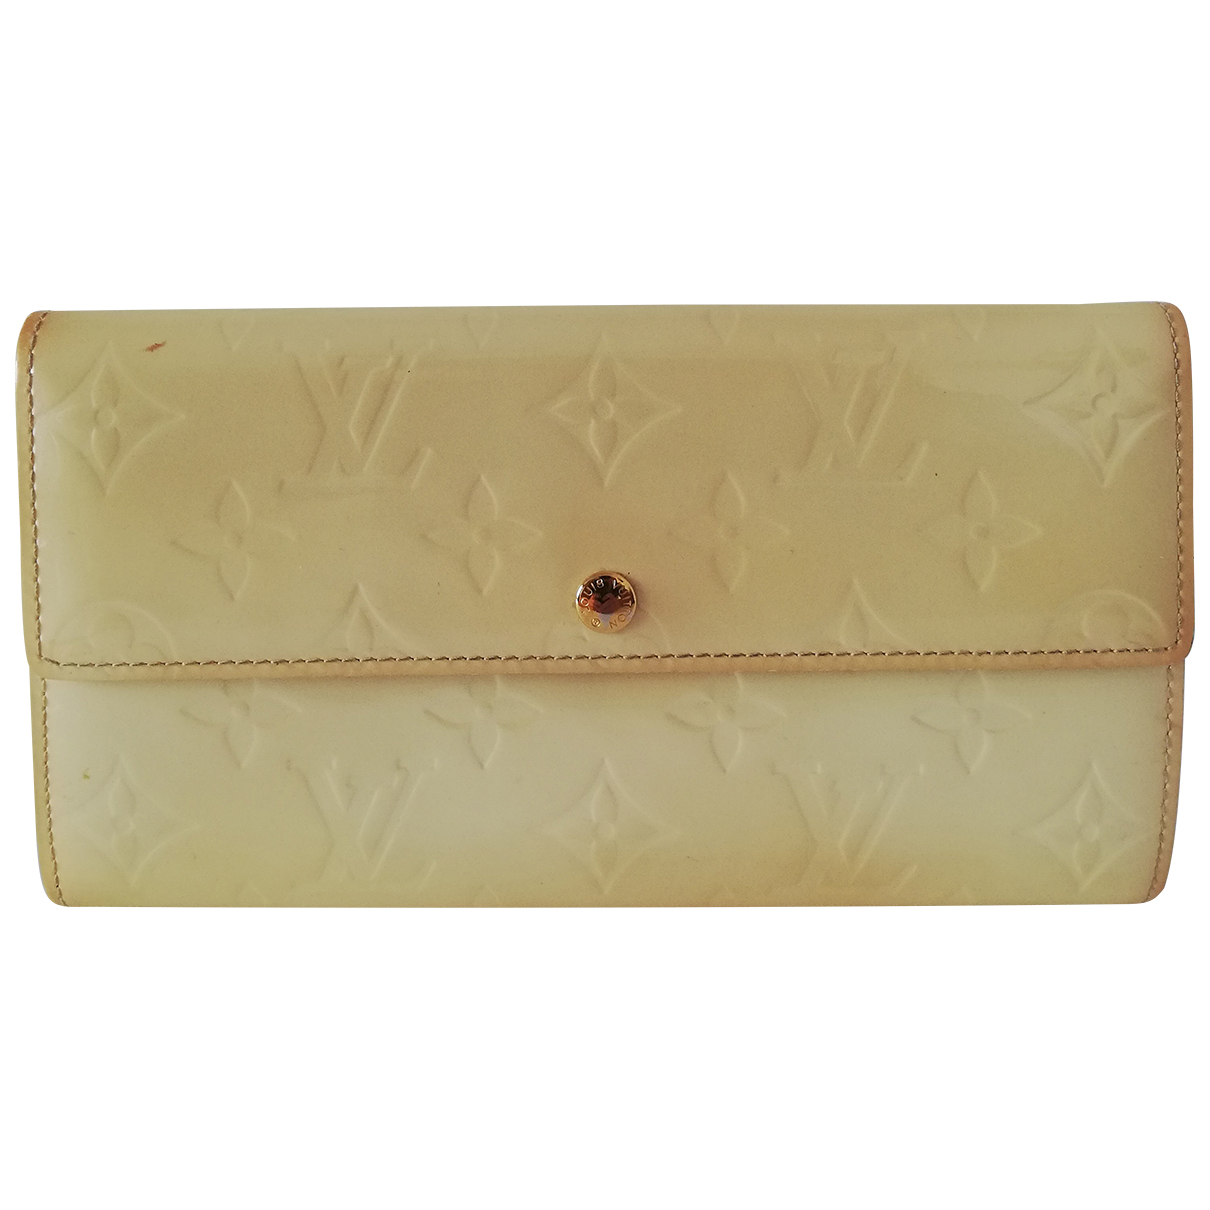 Louis Vuitton Virtuose White Patent leather wallet for Women N